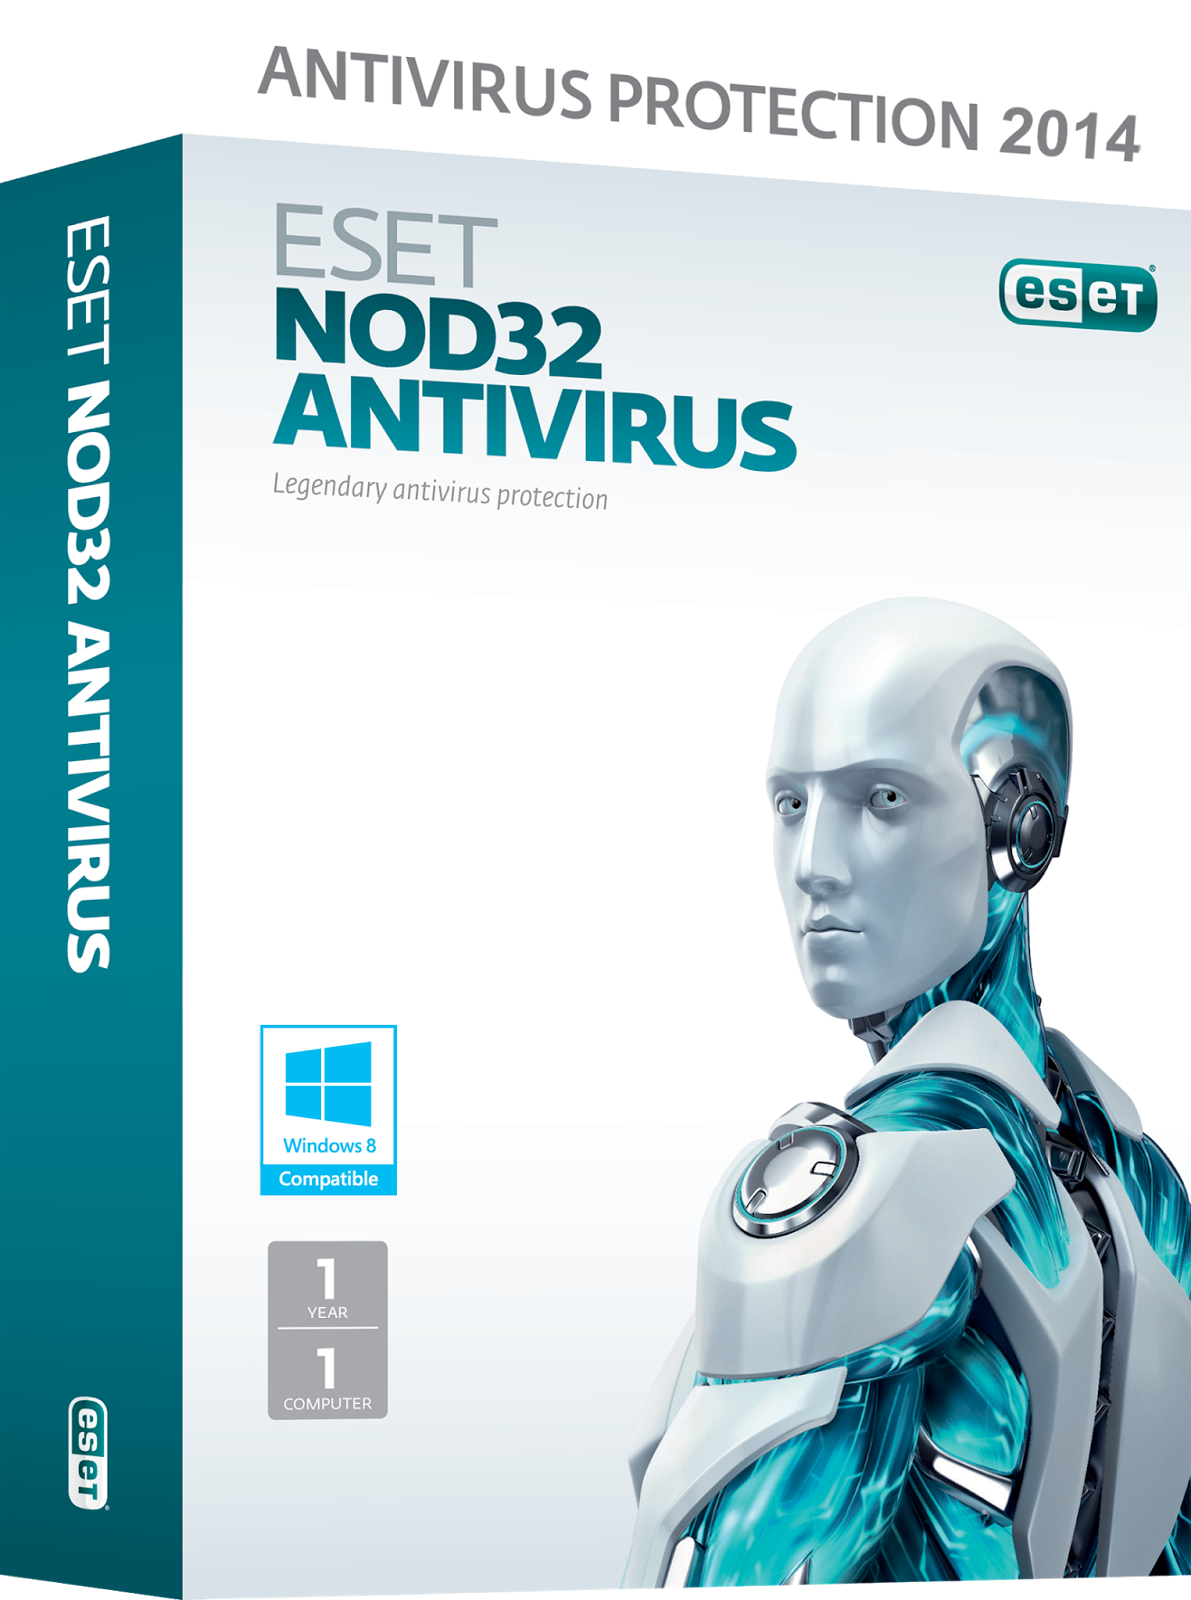 ESET NOD32 Antivirus 5 Free 6 Months Username and Password - Most i Want